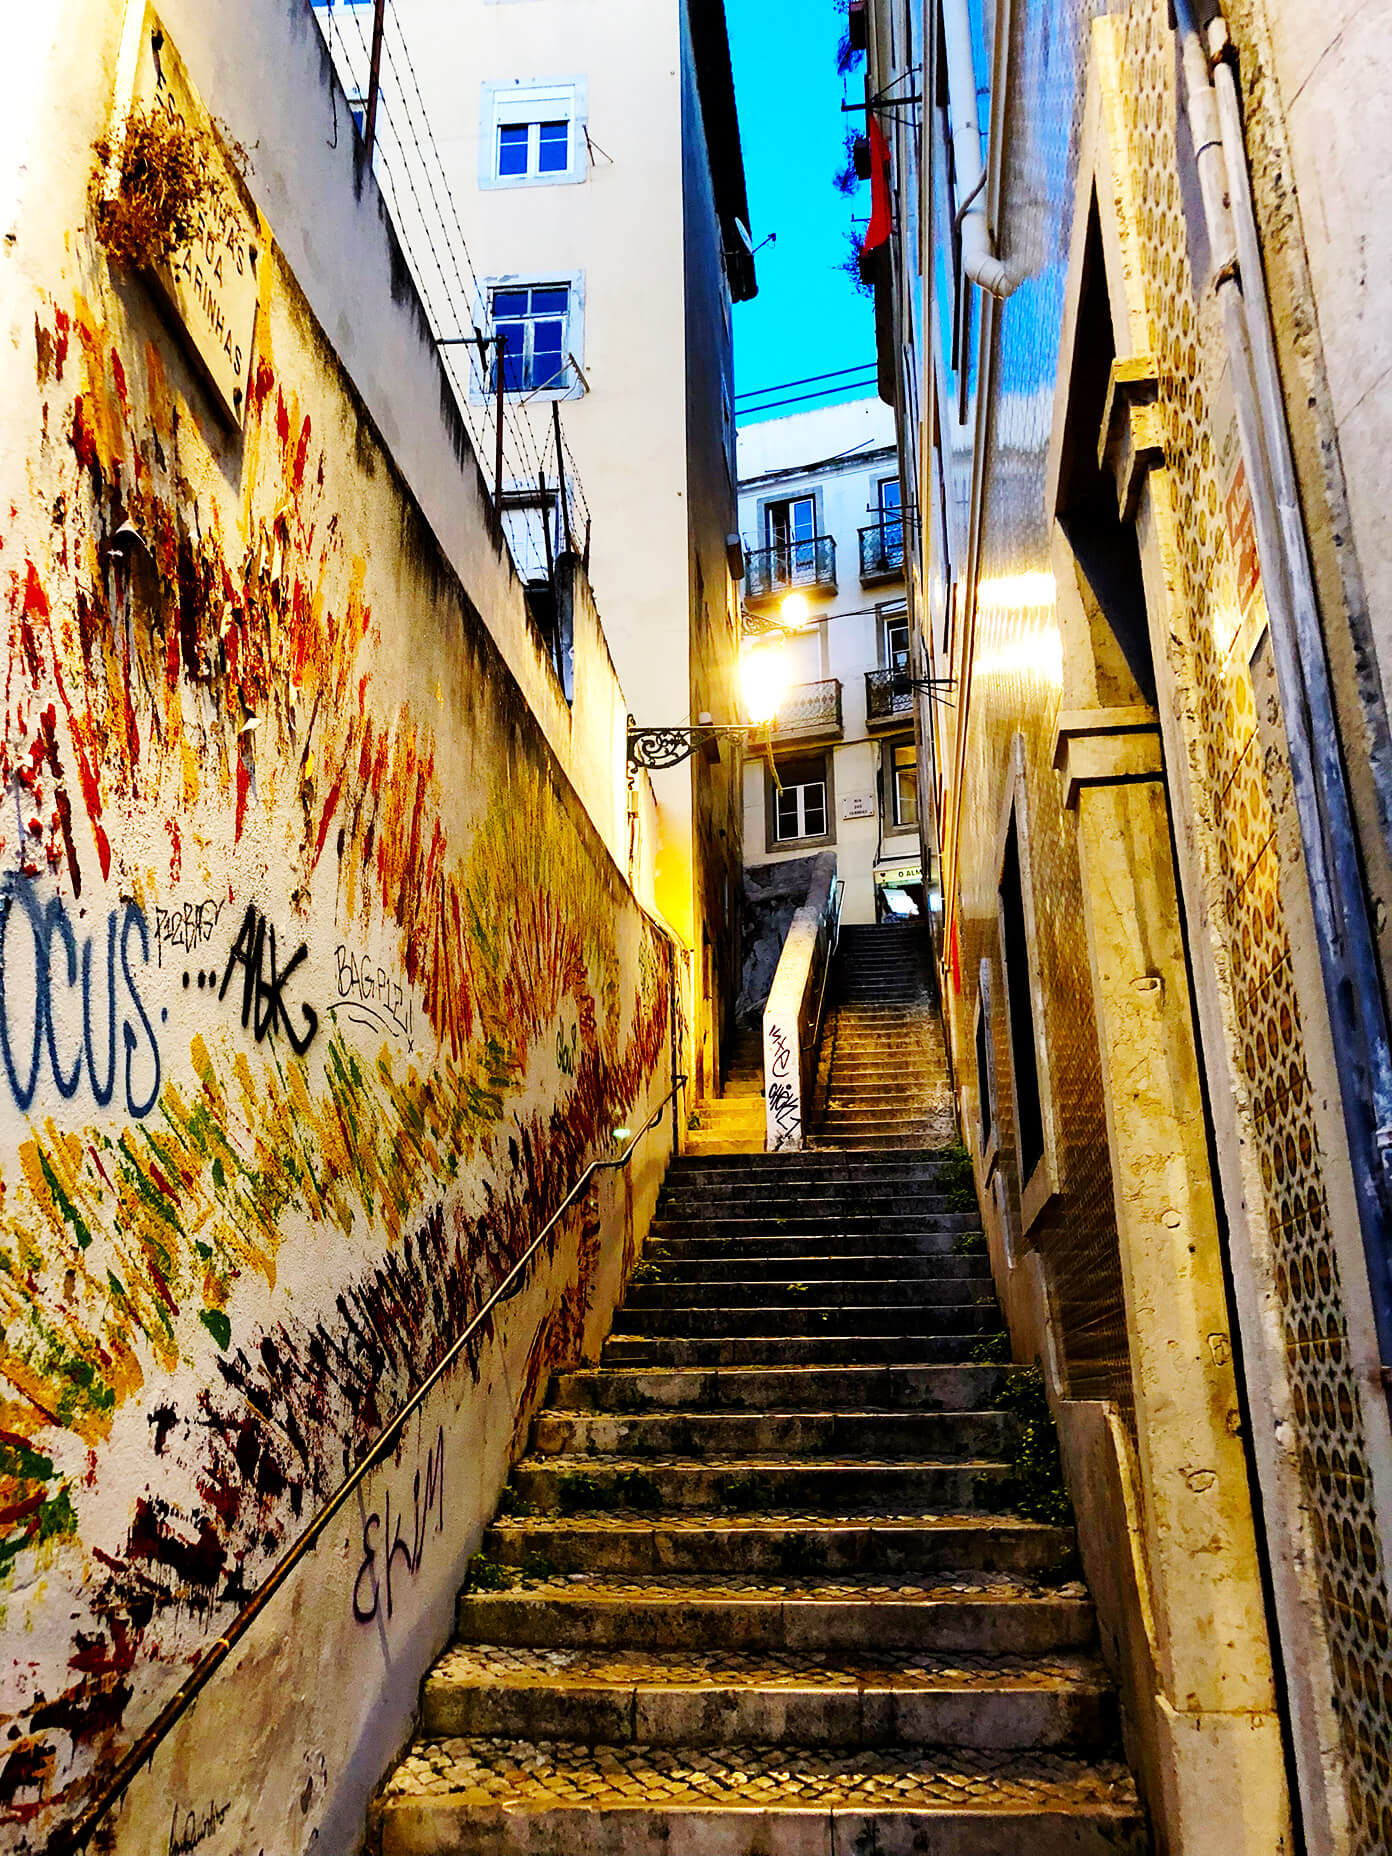 Stairs of Lisbon Portugal